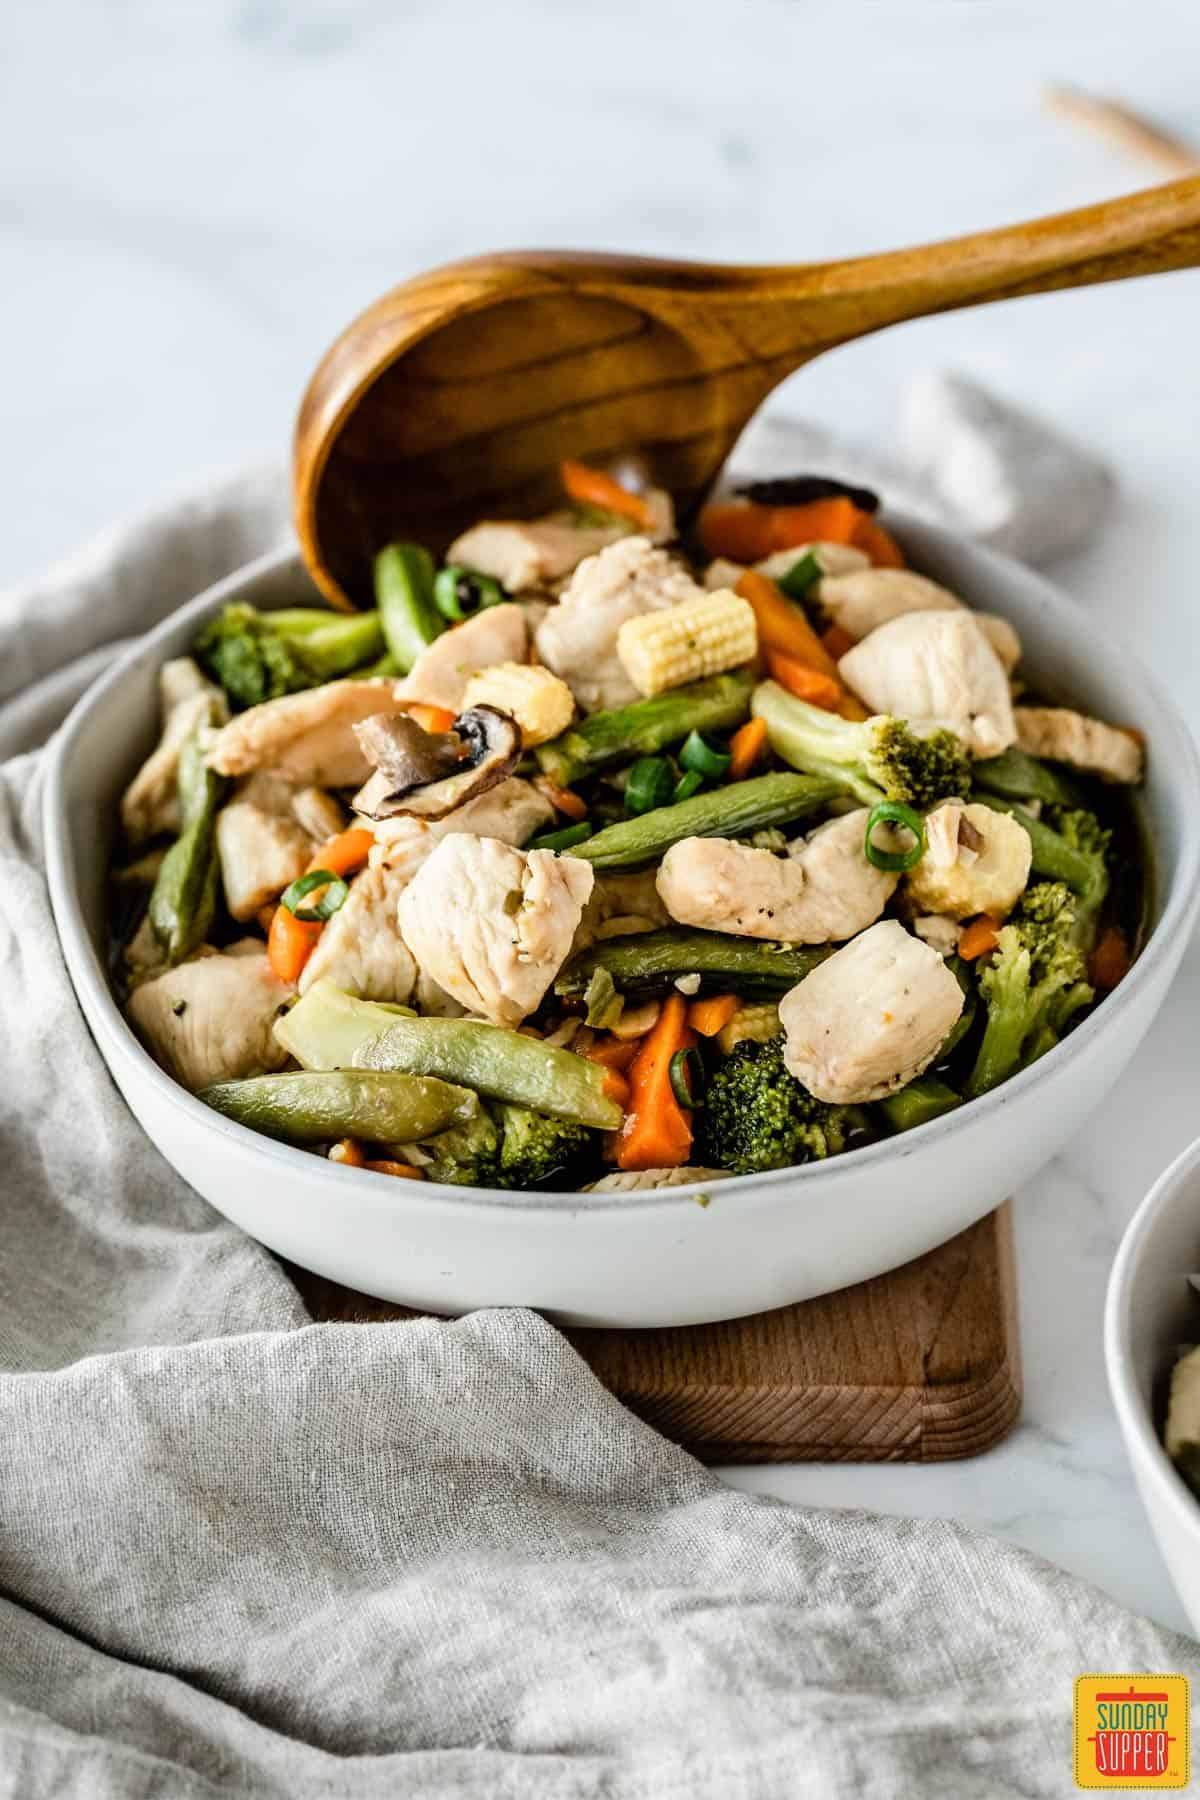 Using a wooden spoon to dish out chicken stir-fry from a white bowl